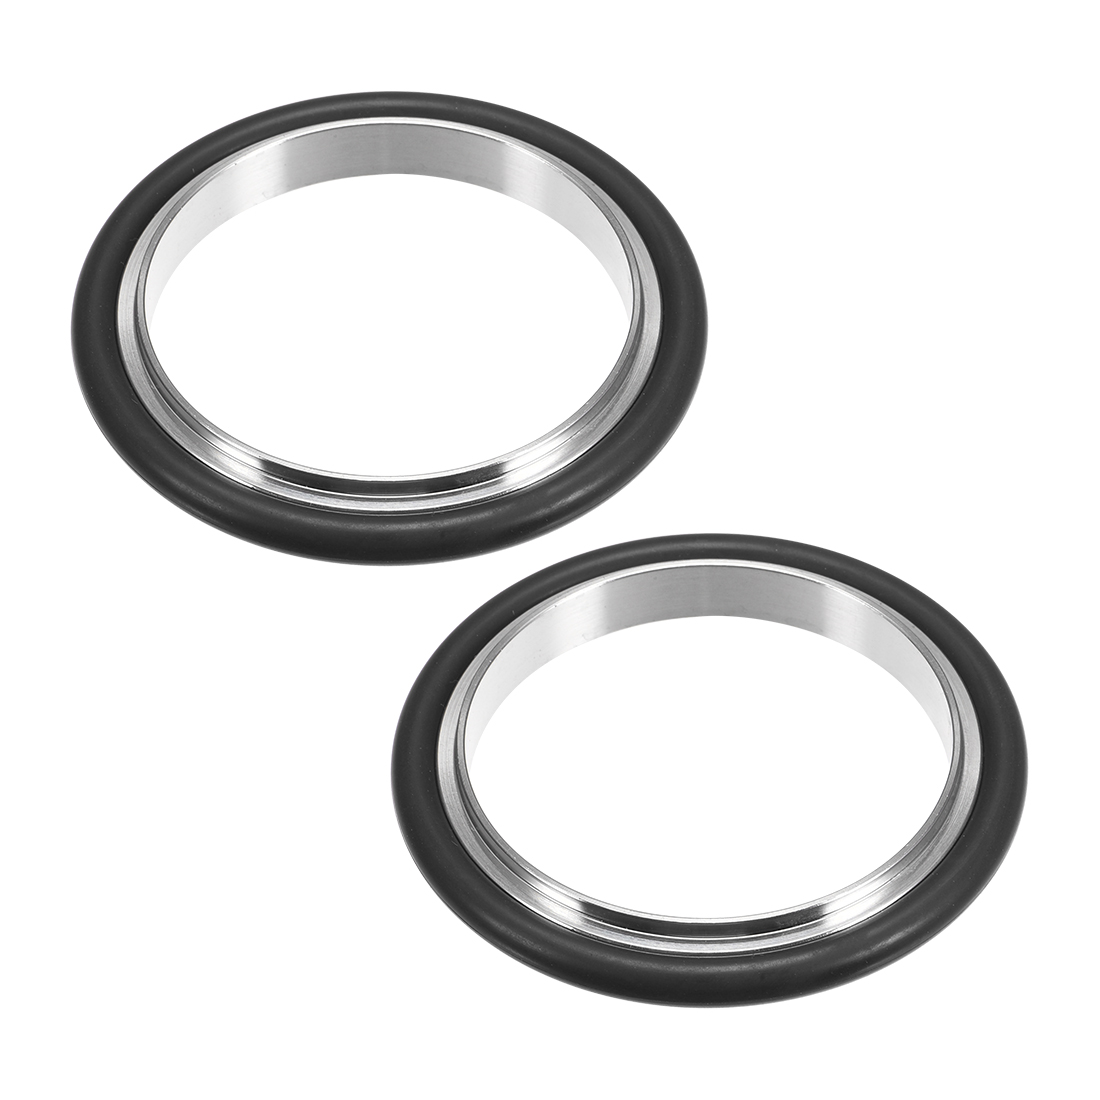 uxcell 2 Pcs Centering Ring KF-16 Vacuum Fittings ISO-KF Flange 66mm x 49.7mm Fluororubber O-Ring